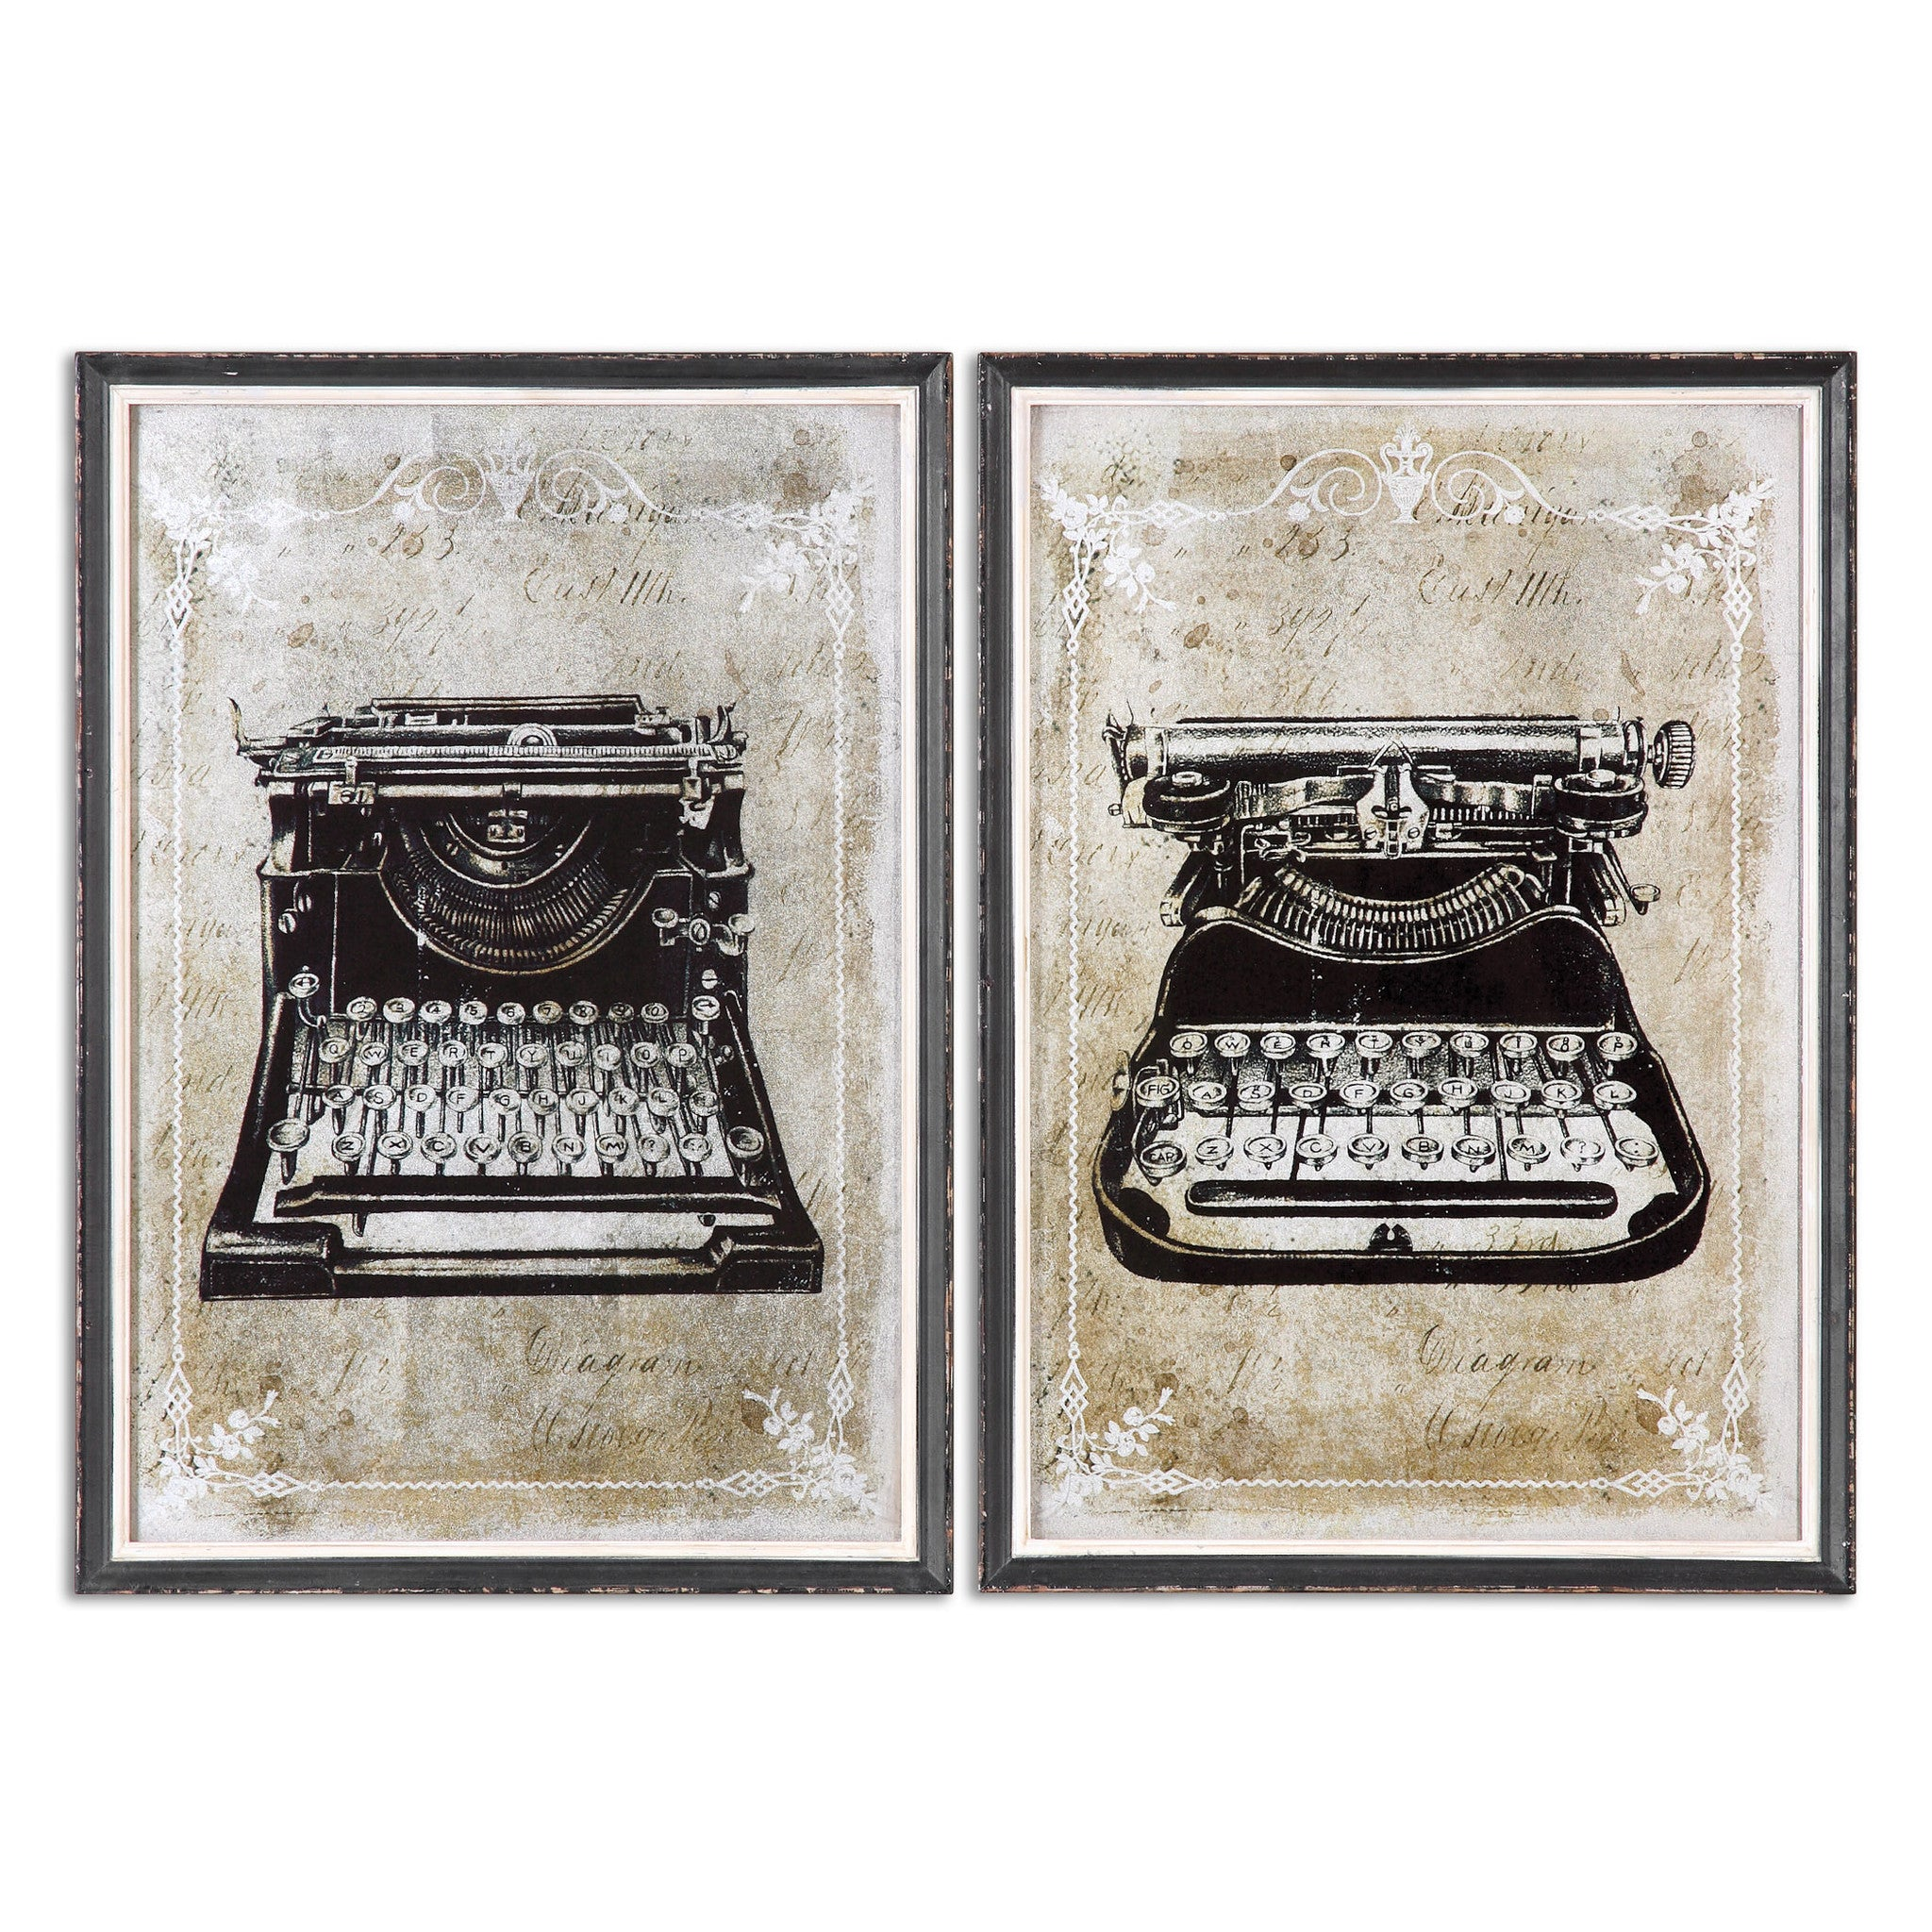 Set of 2 prints of vintage typewriters